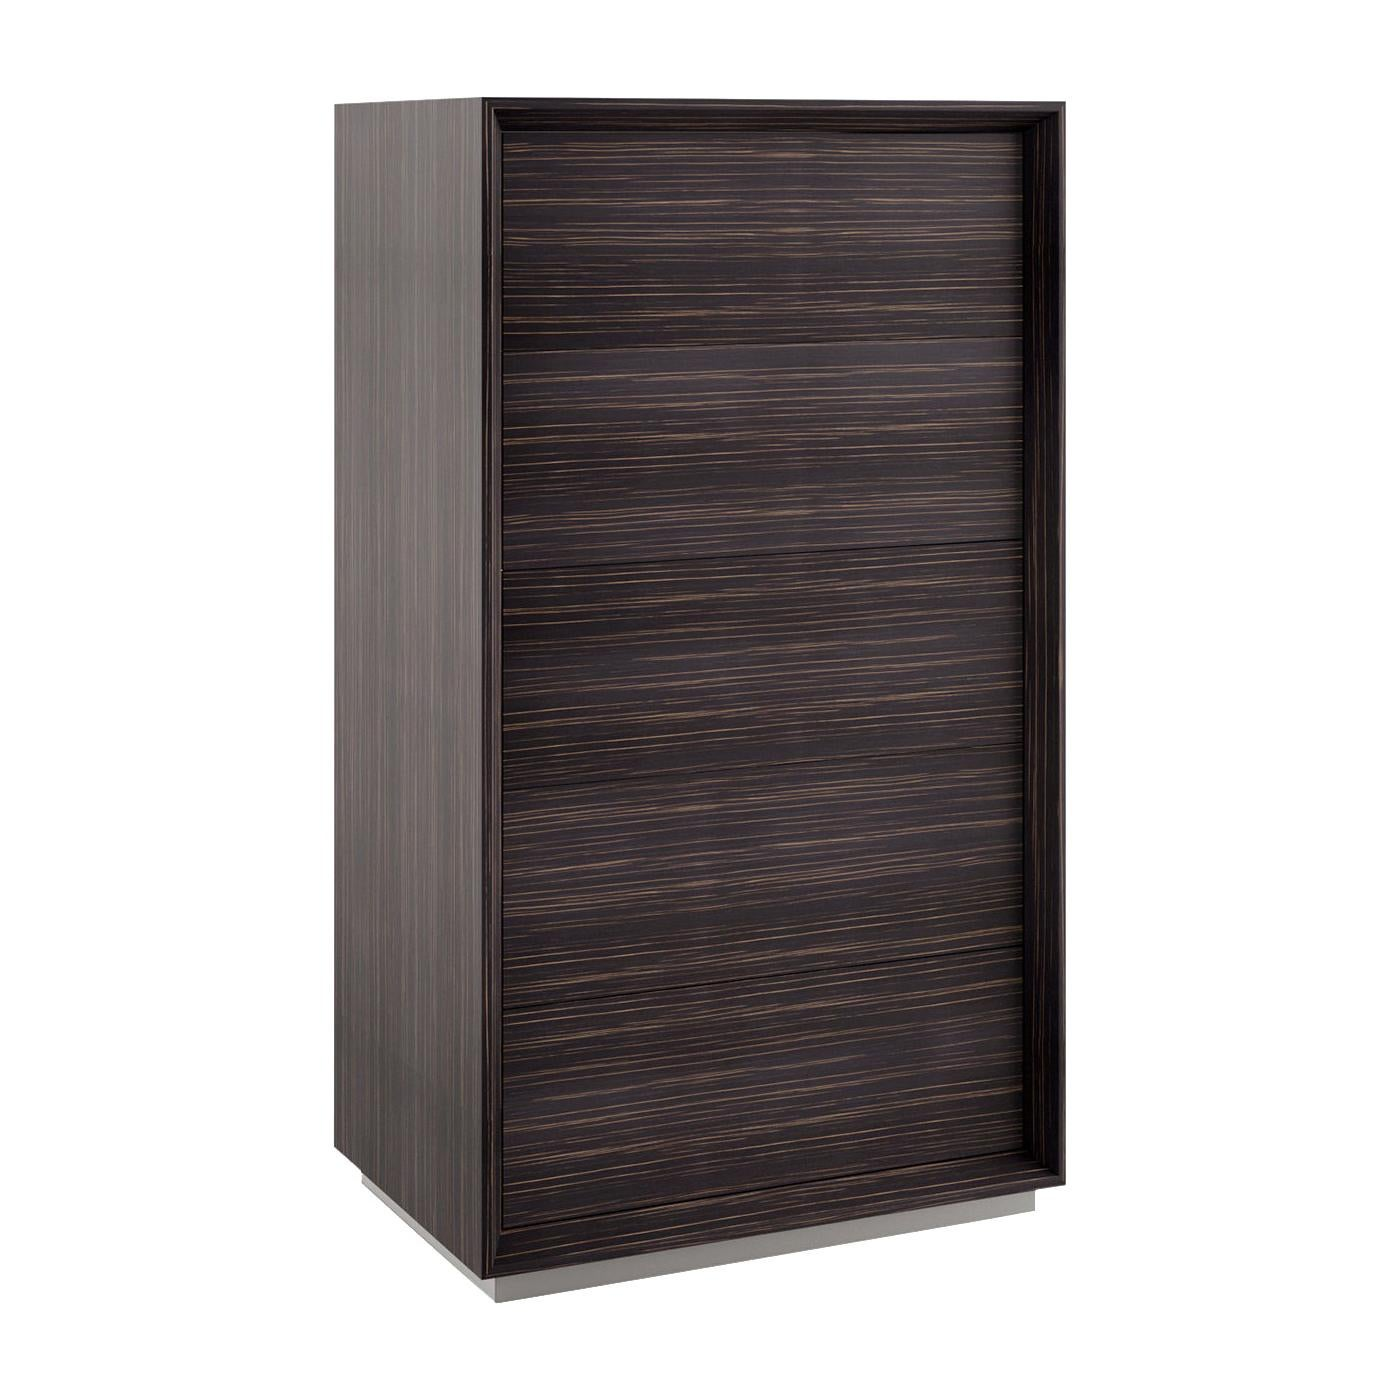 Riviera Chest of Drawers